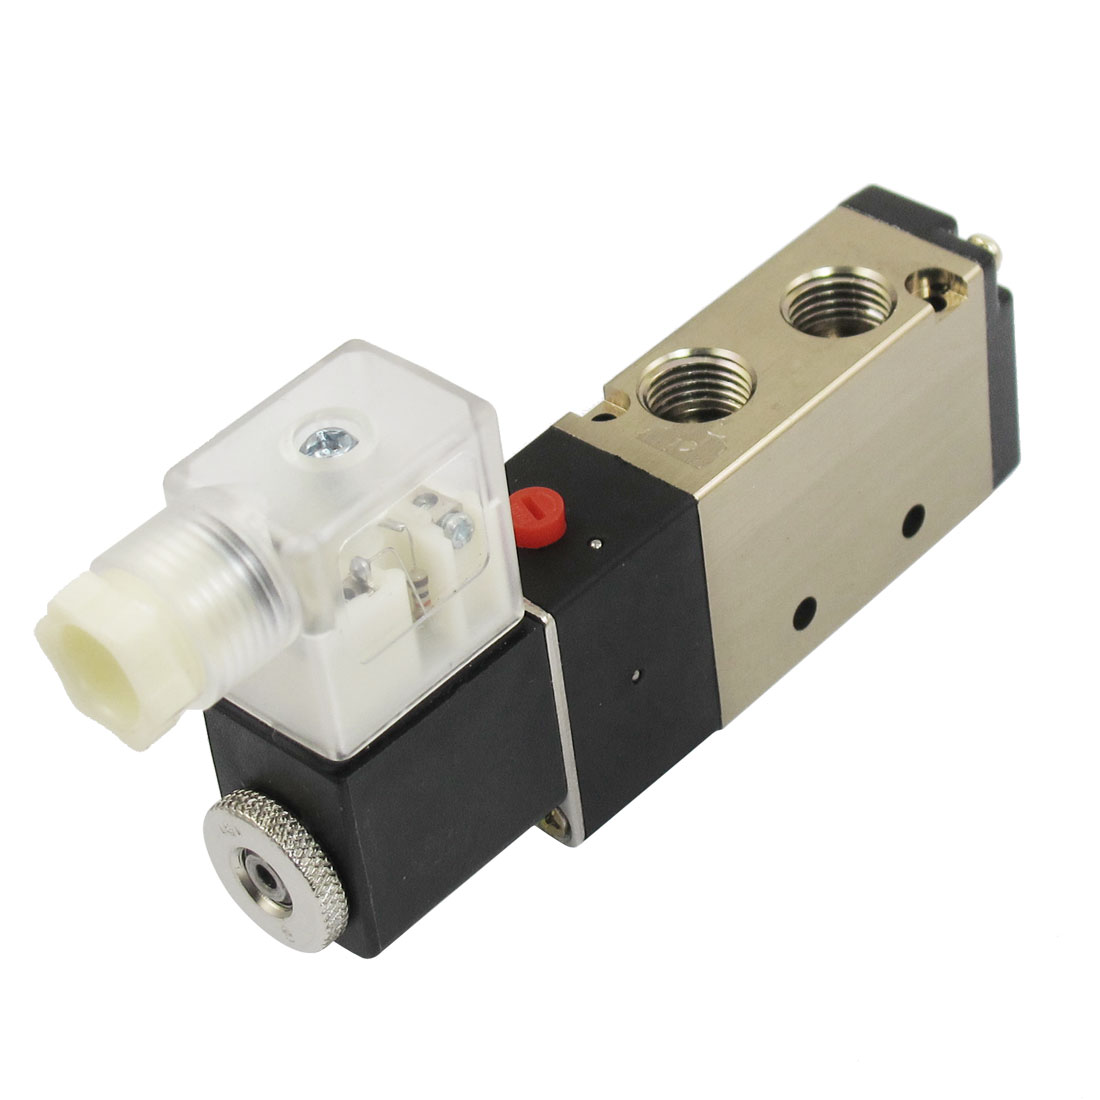 "DC 12V 3W 250mA 2 Position 5 Way Pneumatic Electromagnetic Solenoid Valve G1/8"" G1/4"""